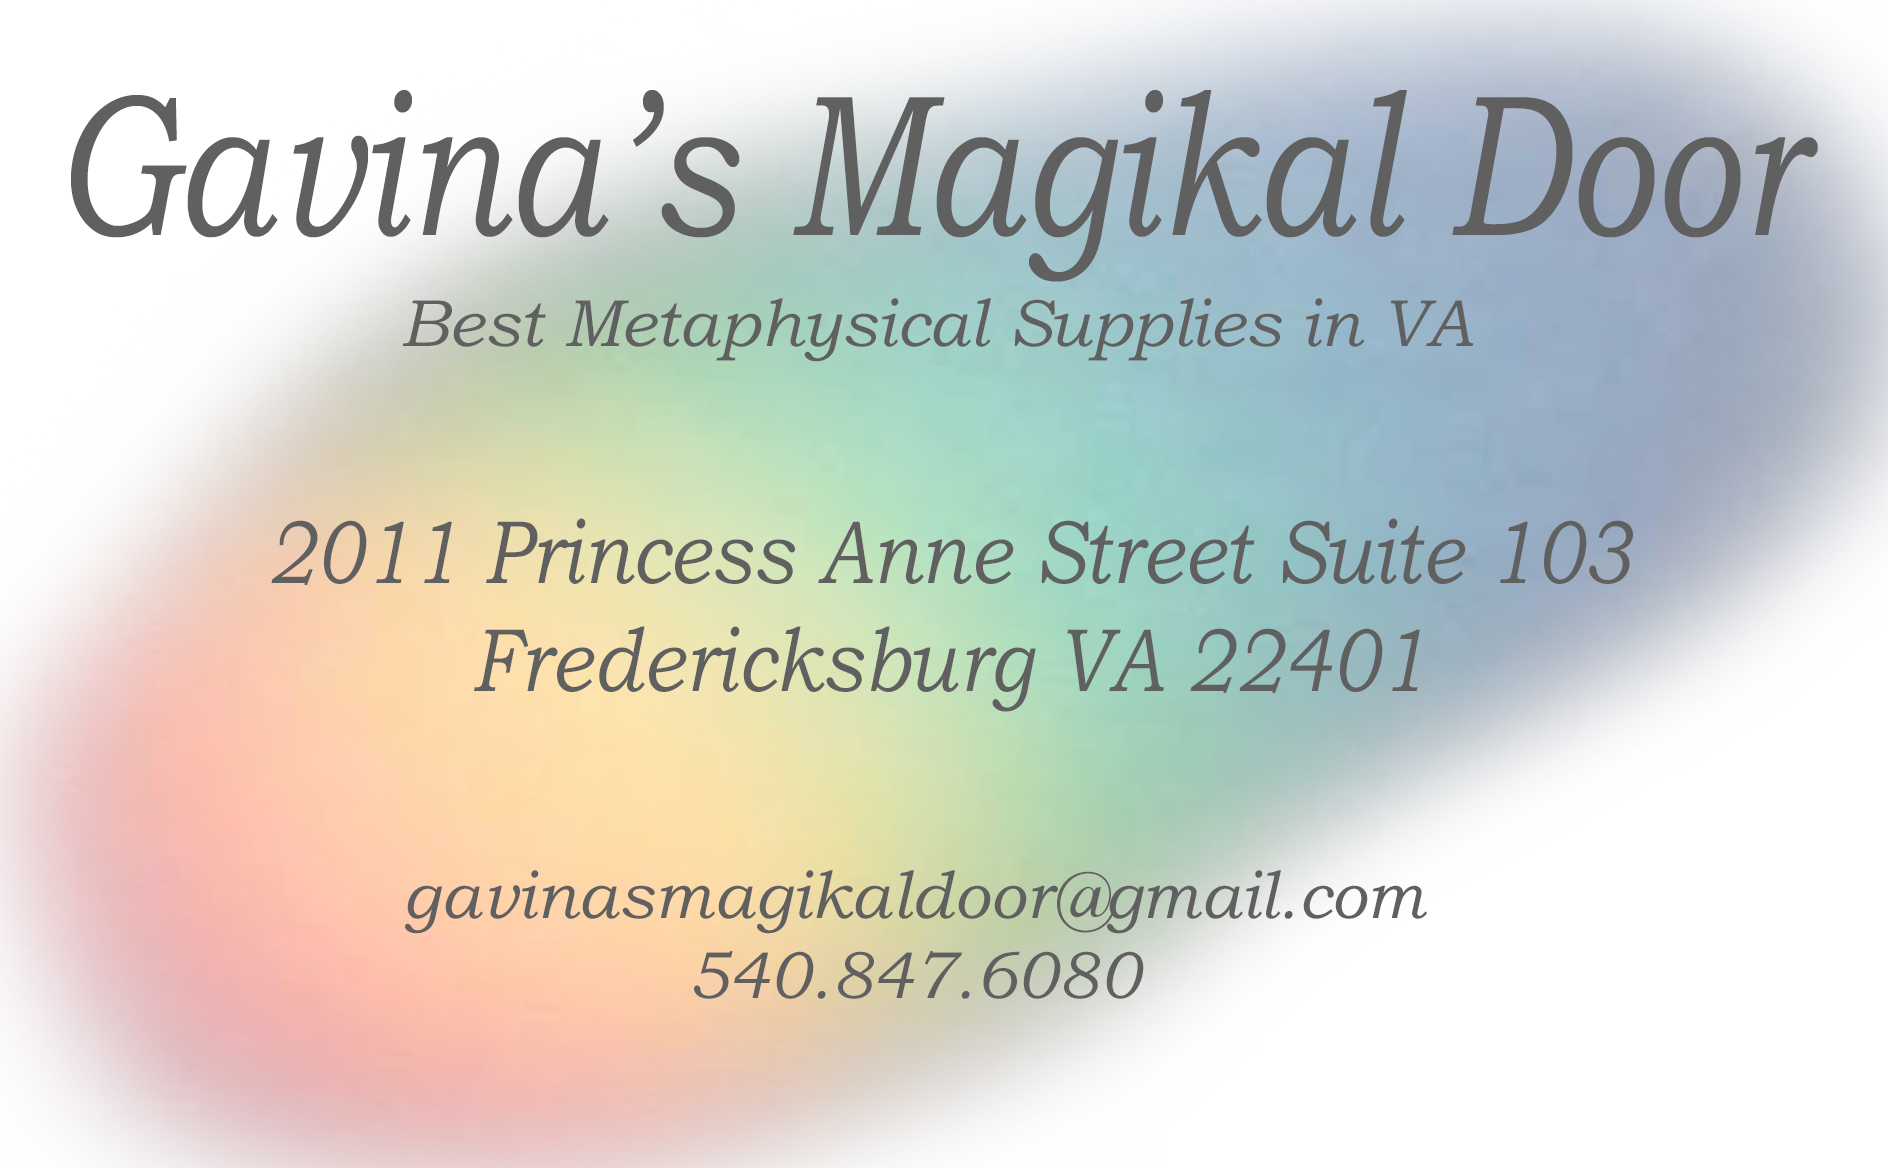 Gavinas Magikal Door what we are all about Fredericksburg VA We will reopen for normal store hours on Tuesday July 11, 2017.